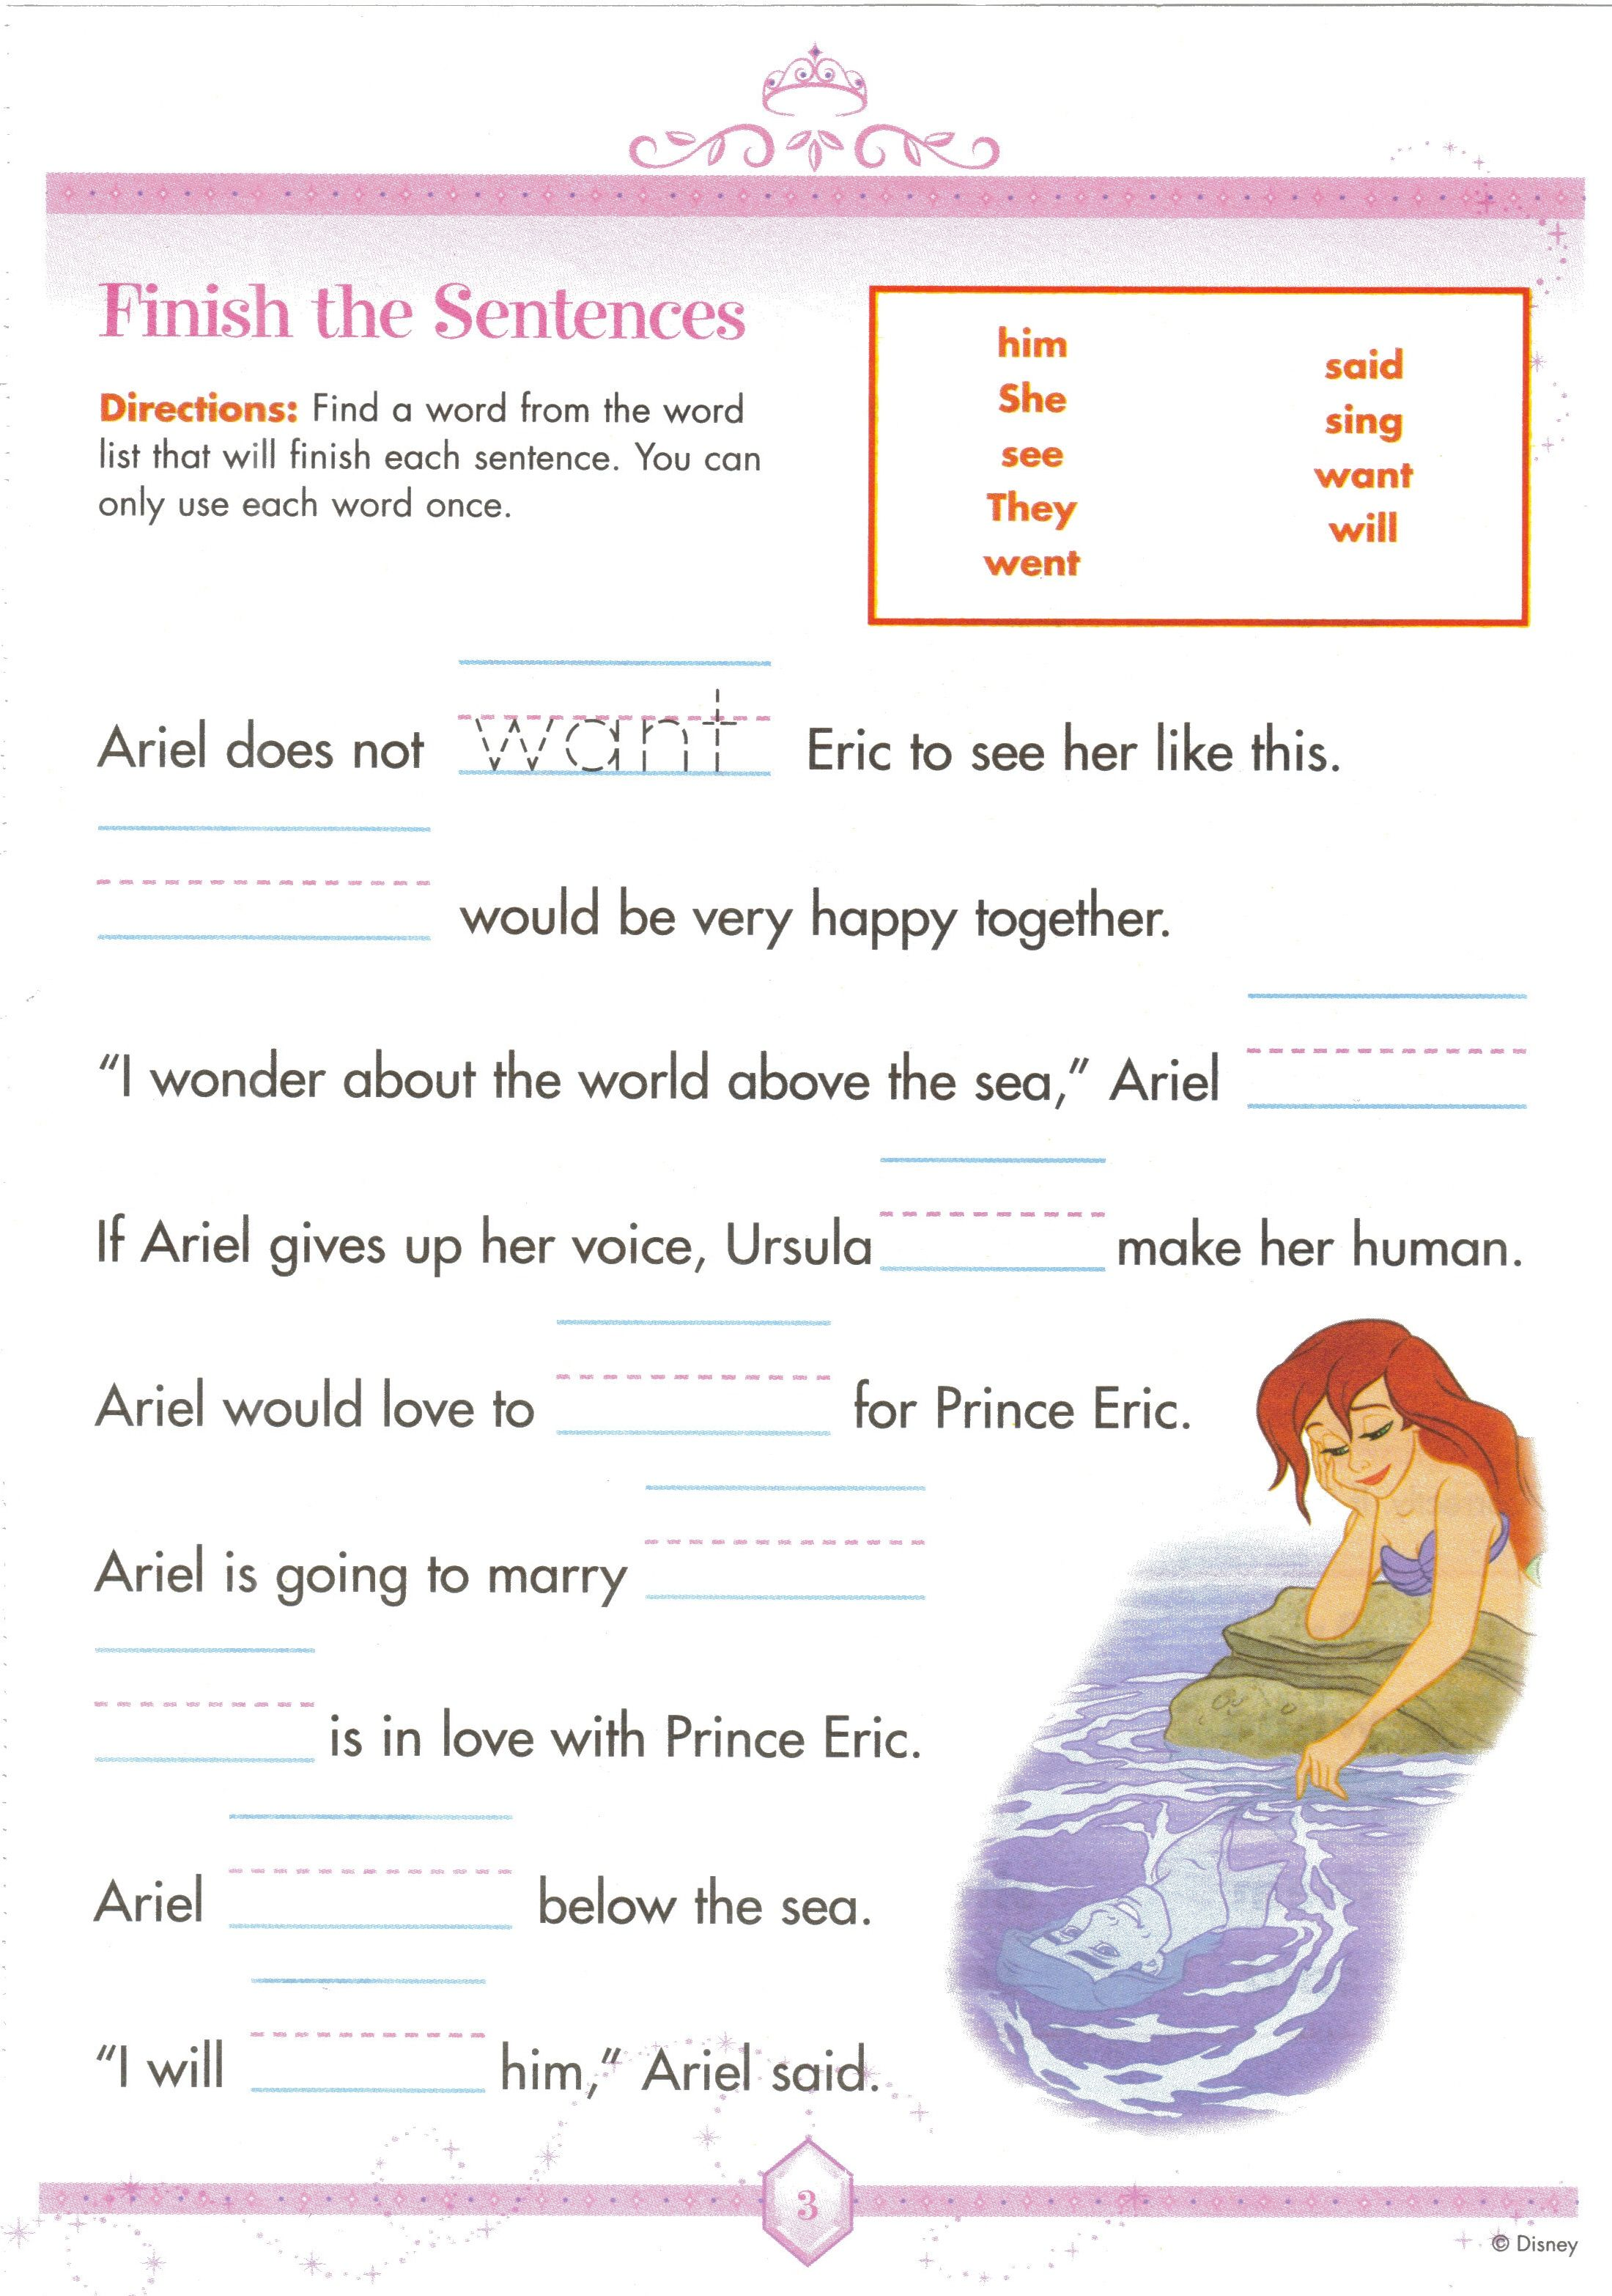 Weirdmailus  Pretty  Images About Worksheets On Pinterest  Fun Facts For Kids  With Engaging  Images About Worksheets On Pinterest  Fun Facts For Kids Earth Day Worksheets And Jungles With Beautiful Montessori Language Worksheets Also Number  Worksheets For Kindergarten In Addition Grade  Math Worksheets Place Value And Reading Worksheets For Highschool Students As Well As Eftps Business Phone Worksheet Additionally Printable Toddler Worksheets From Pinterestcom With Weirdmailus  Engaging  Images About Worksheets On Pinterest  Fun Facts For Kids  With Beautiful  Images About Worksheets On Pinterest  Fun Facts For Kids Earth Day Worksheets And Jungles And Pretty Montessori Language Worksheets Also Number  Worksheets For Kindergarten In Addition Grade  Math Worksheets Place Value From Pinterestcom